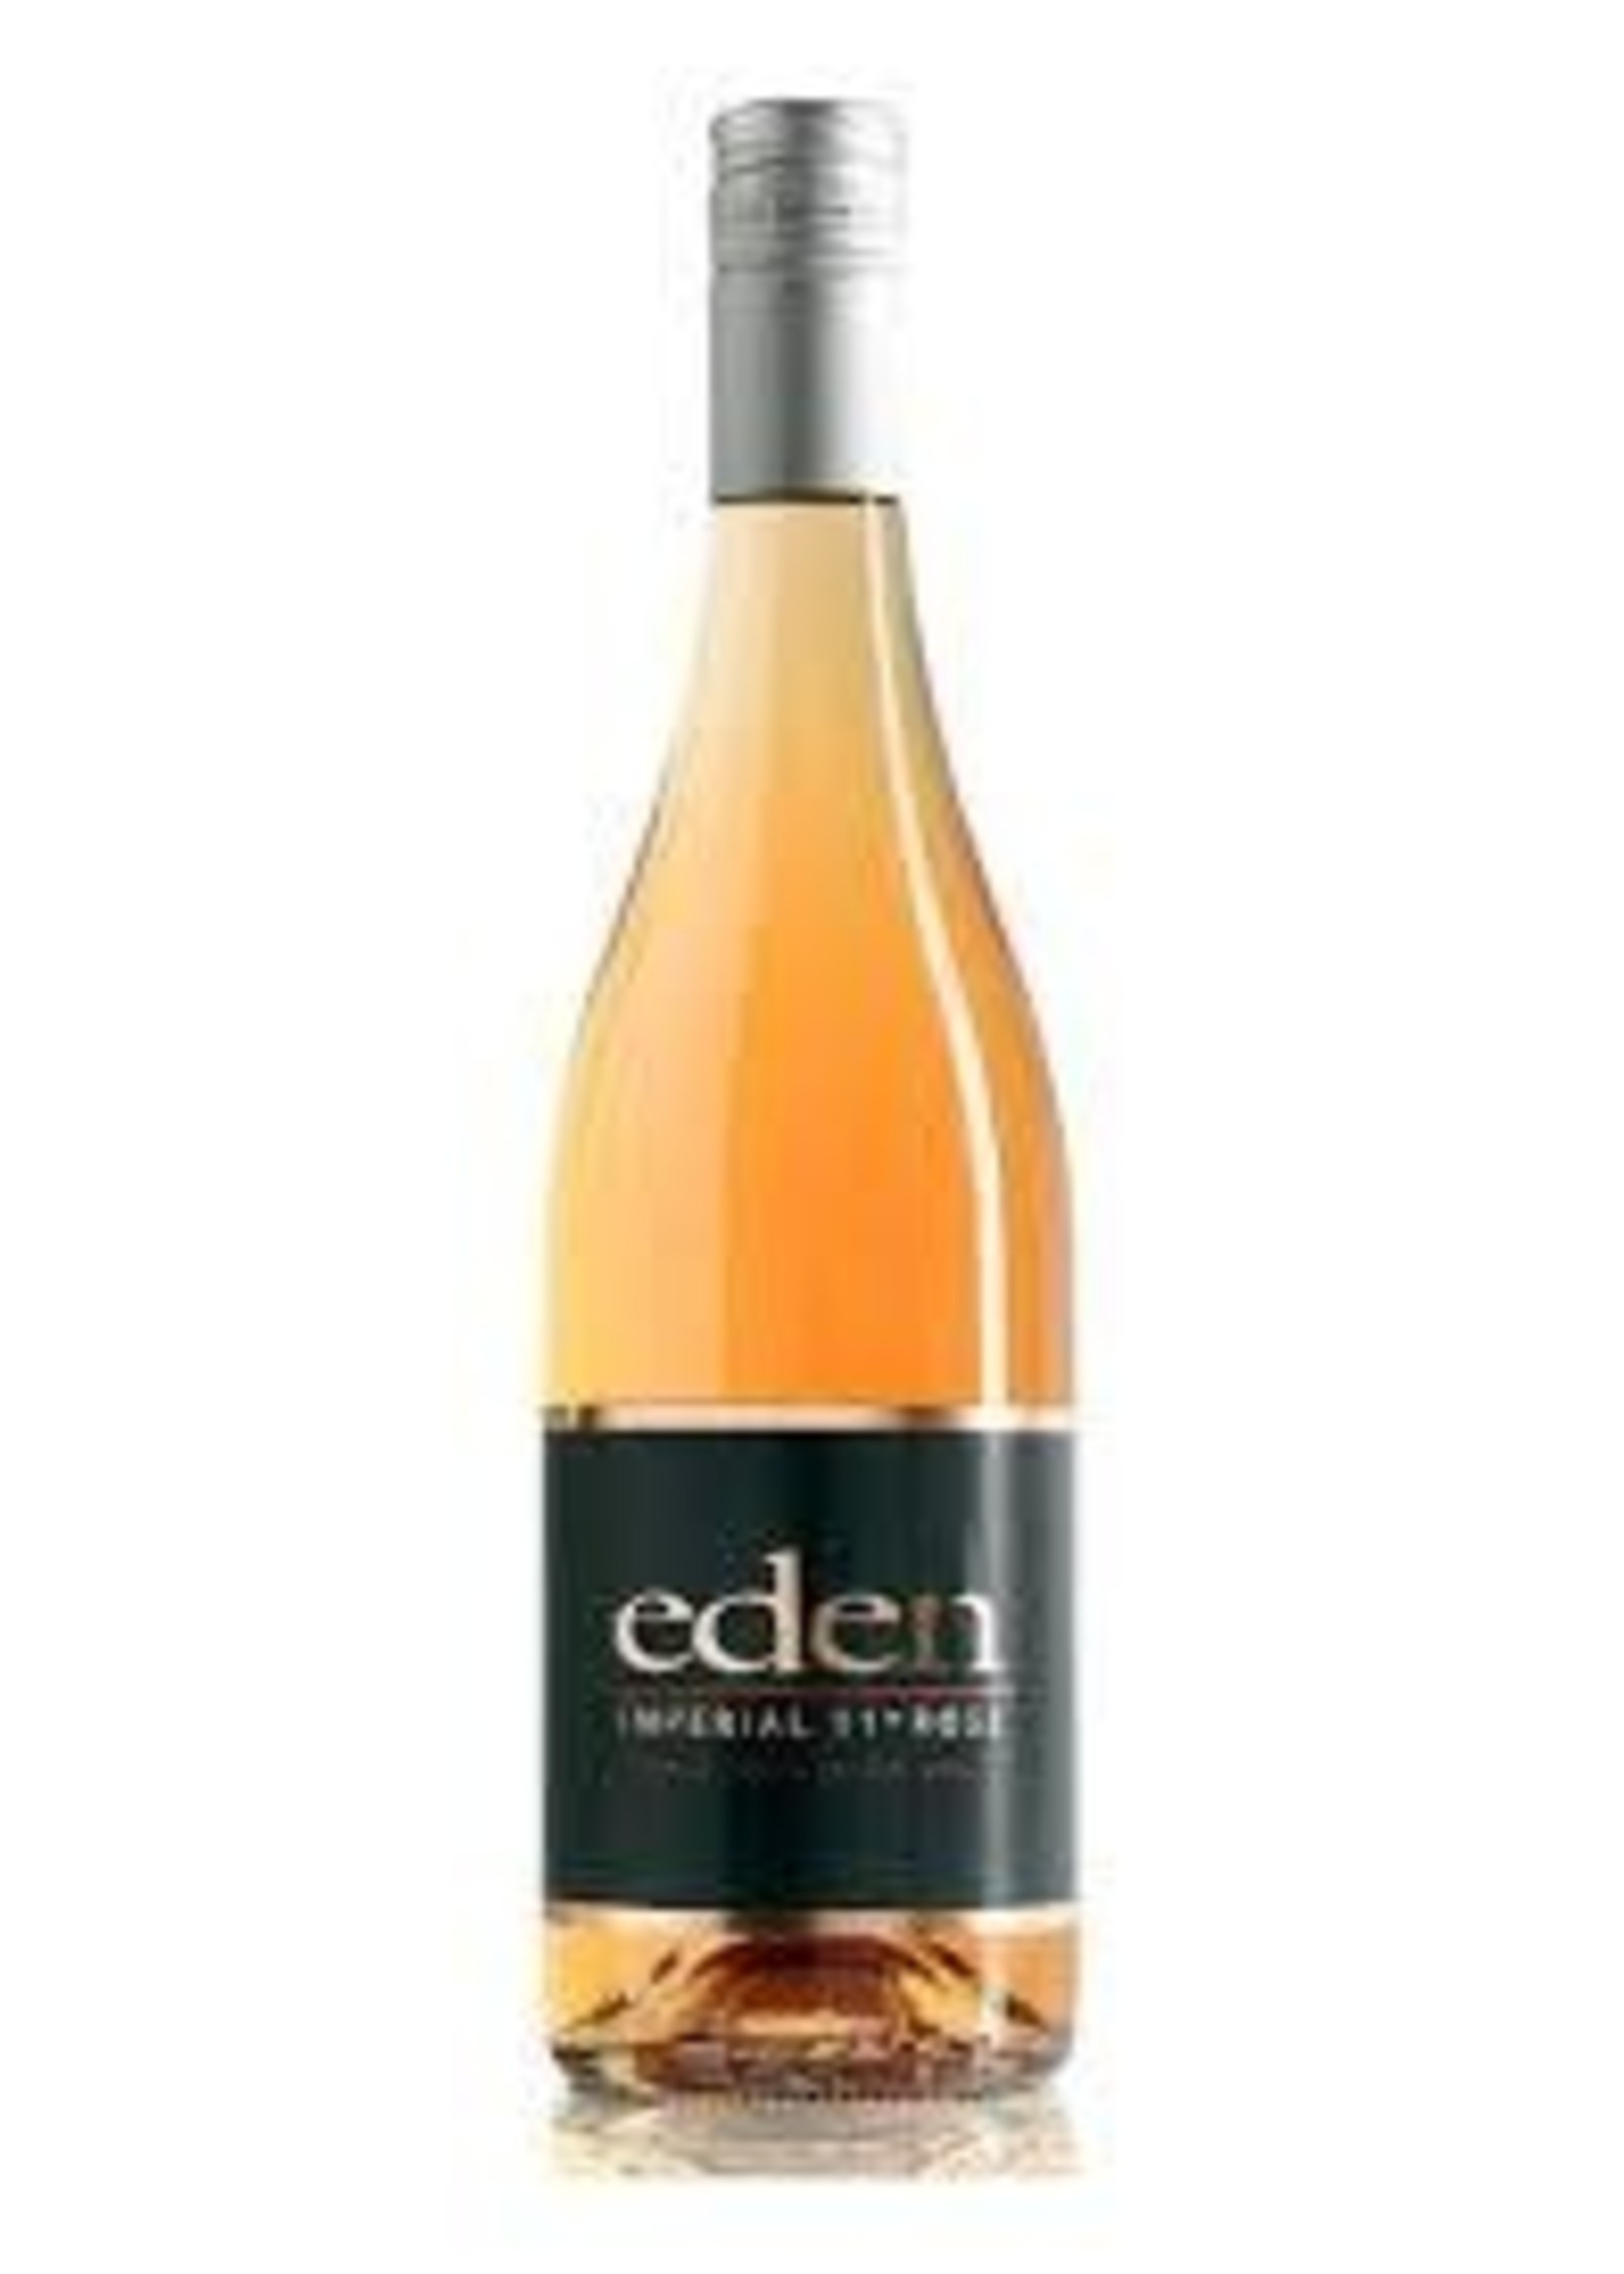 Eden Specialty Ciders Imperial Rose 375ml